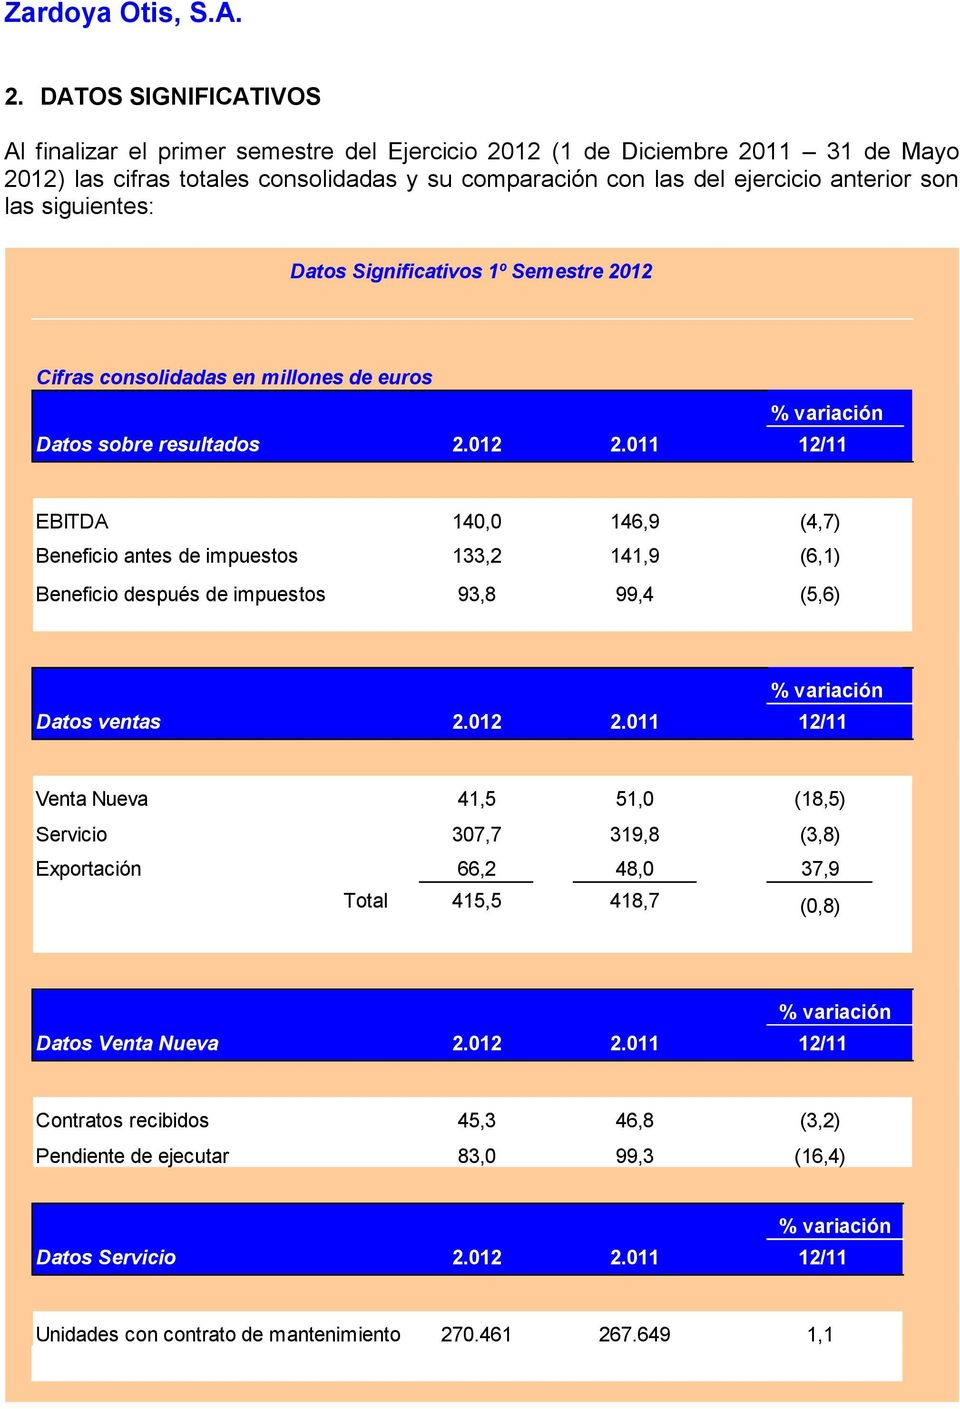 011 12/11 EBITDA 140,0 146,9 (4,7) Beneficio antes de impuestos 133,2 141,9 (6,1) Beneficio después de impuestos 93,8 99,4 (5,6) Datos ventas 2.012 2.